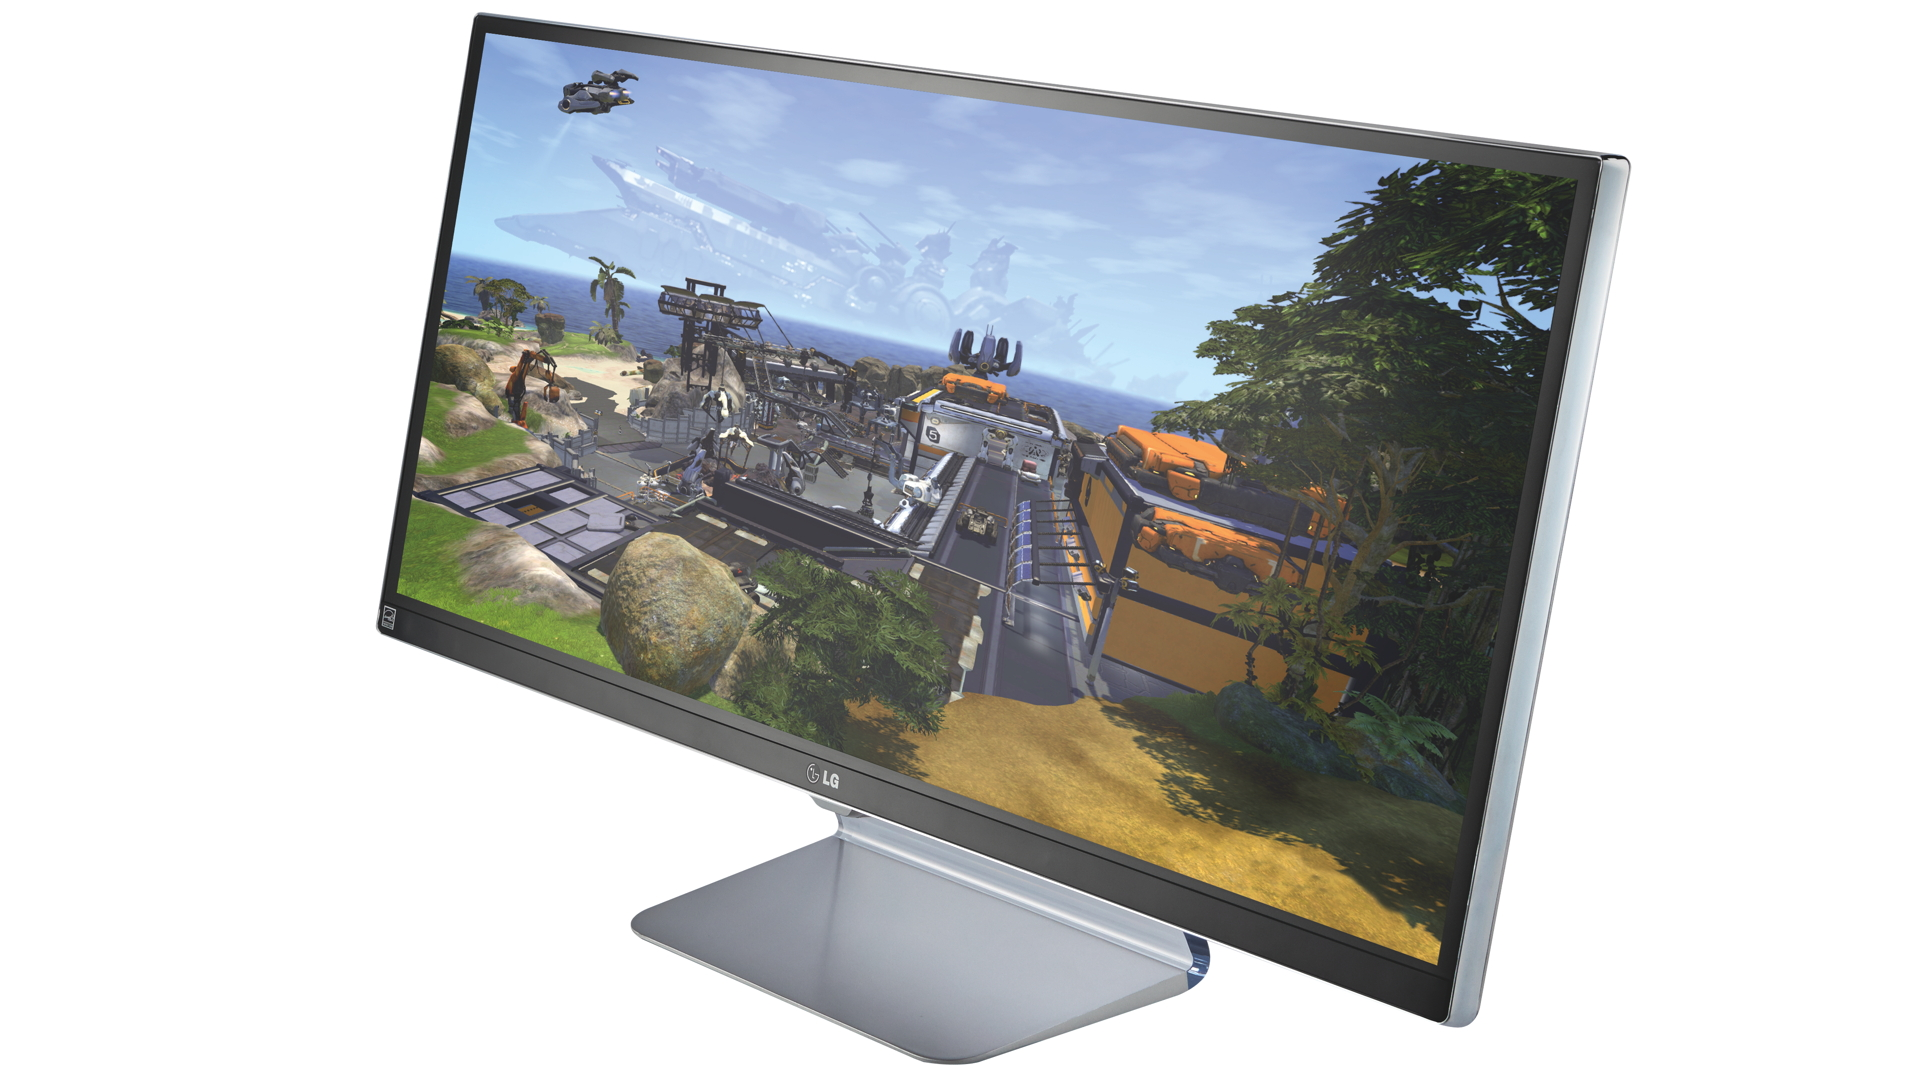 LG's 34-inch 21:9 monitor has convinced me that ultrawide is